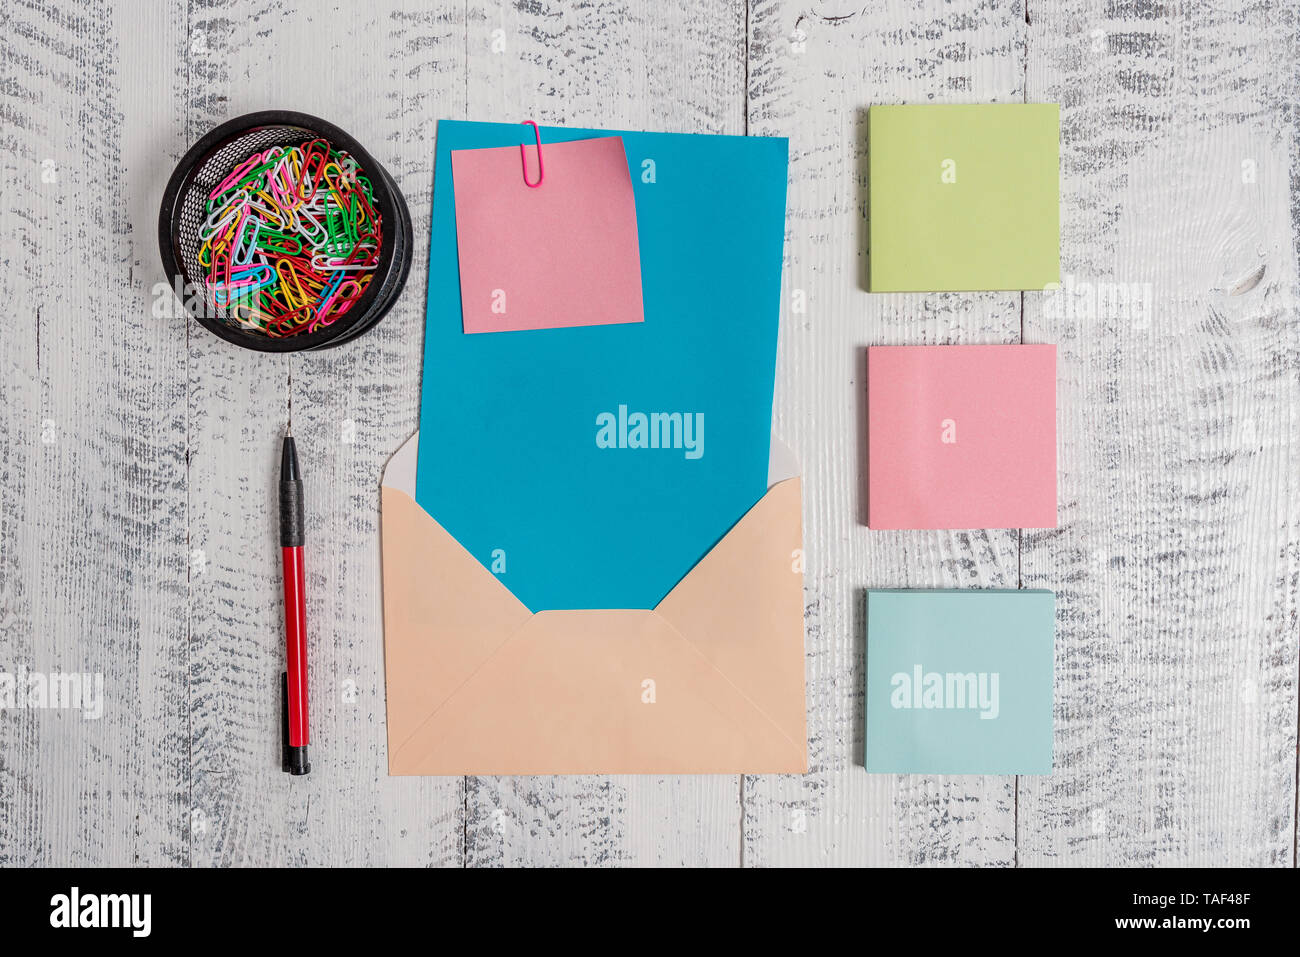 Envelope letter paper sticky note ballpoint clips holder wooden background - Stock Image